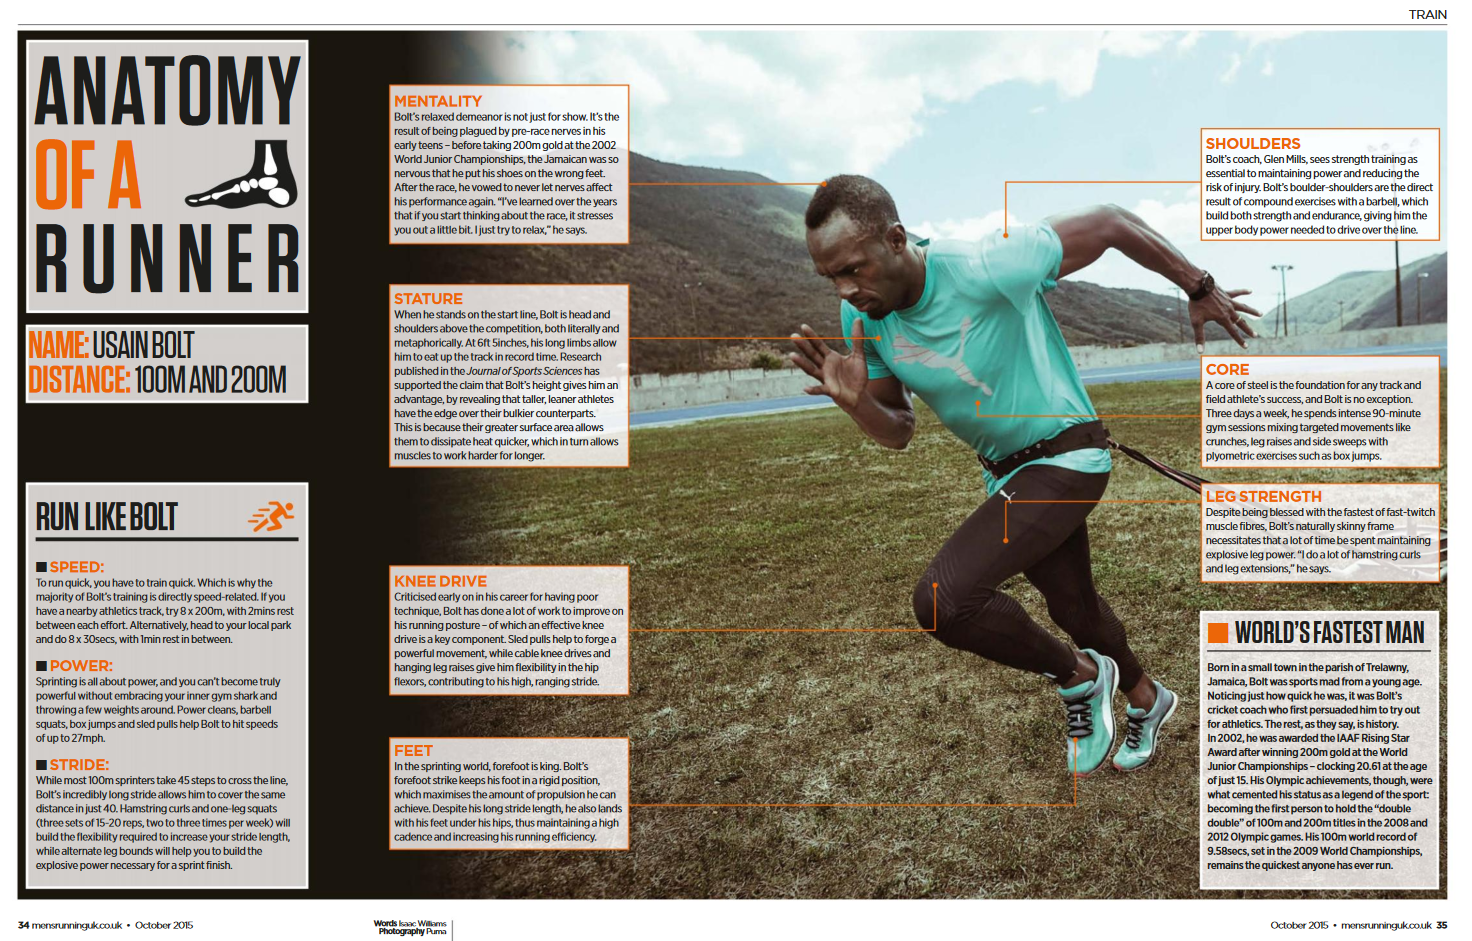 Anatomy of a runner (sprinter). Lots of compound strength exercises ...